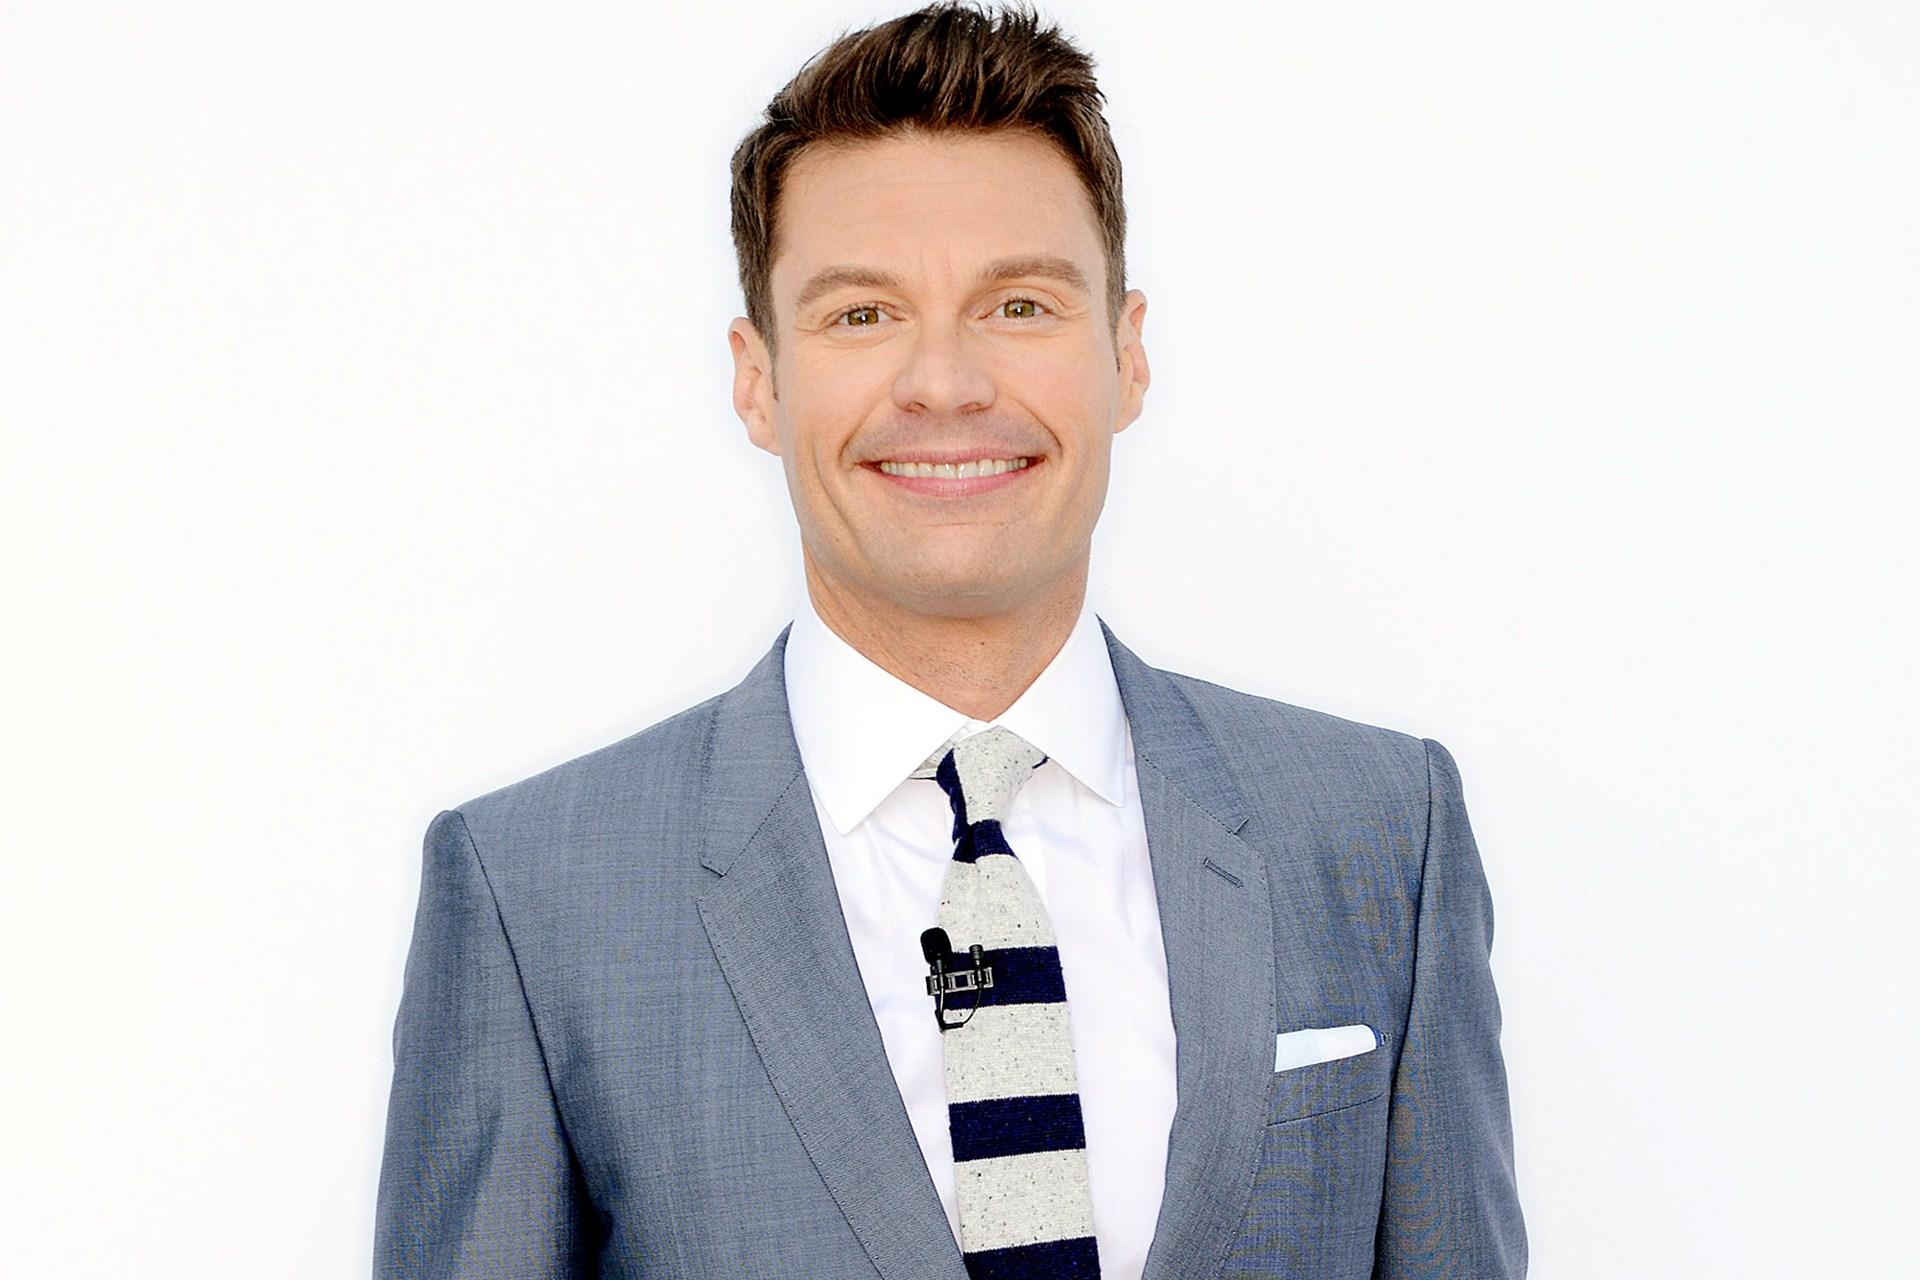 Ryan Seacrest Smile Wallpapers 63252 1920x1280px